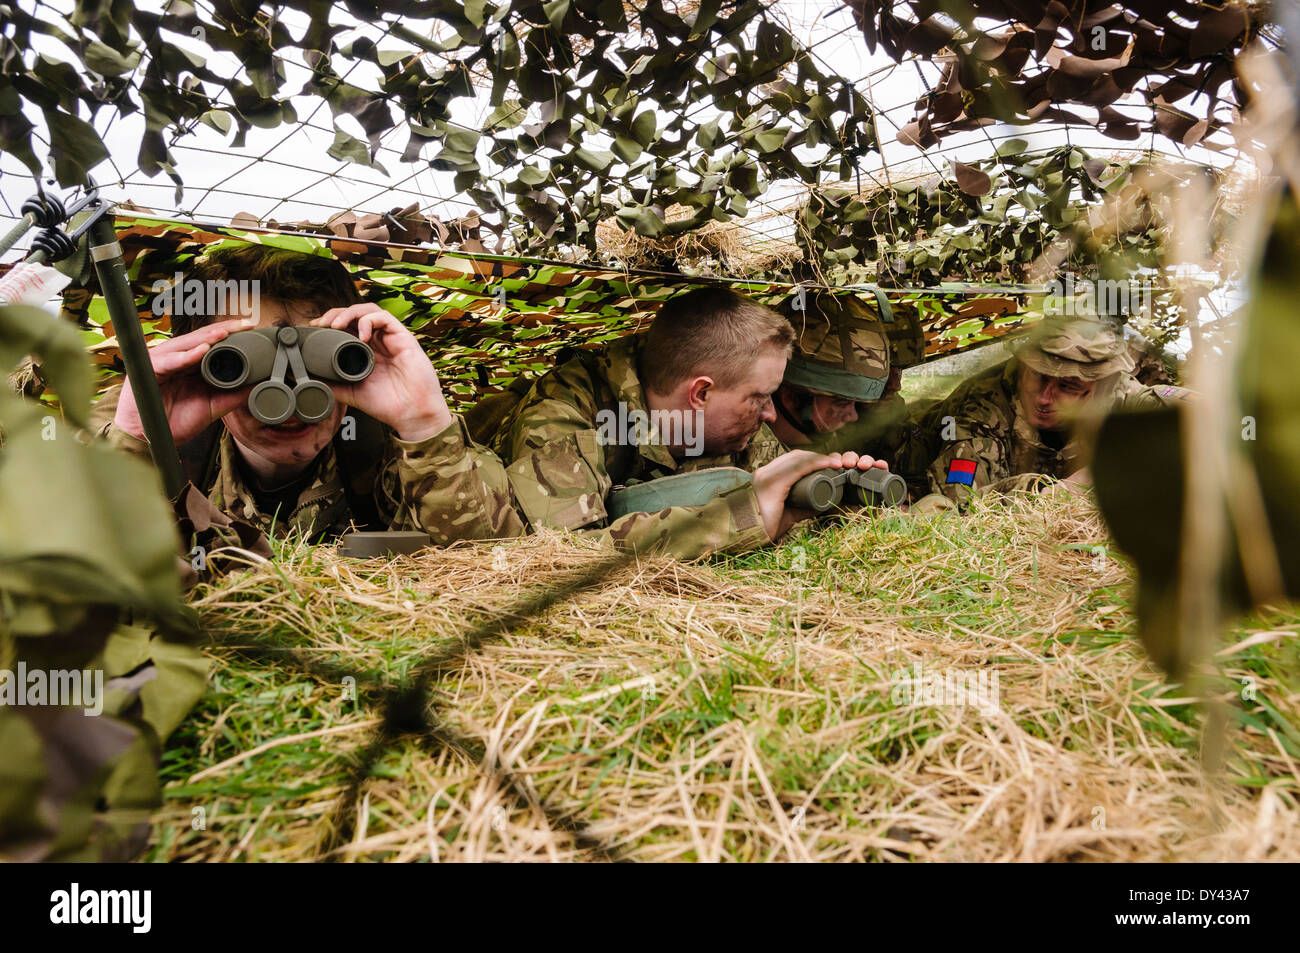 A soldier looks through binoculars as she hides with three others underneath camouflage netting in a forward observation post - Stock Image